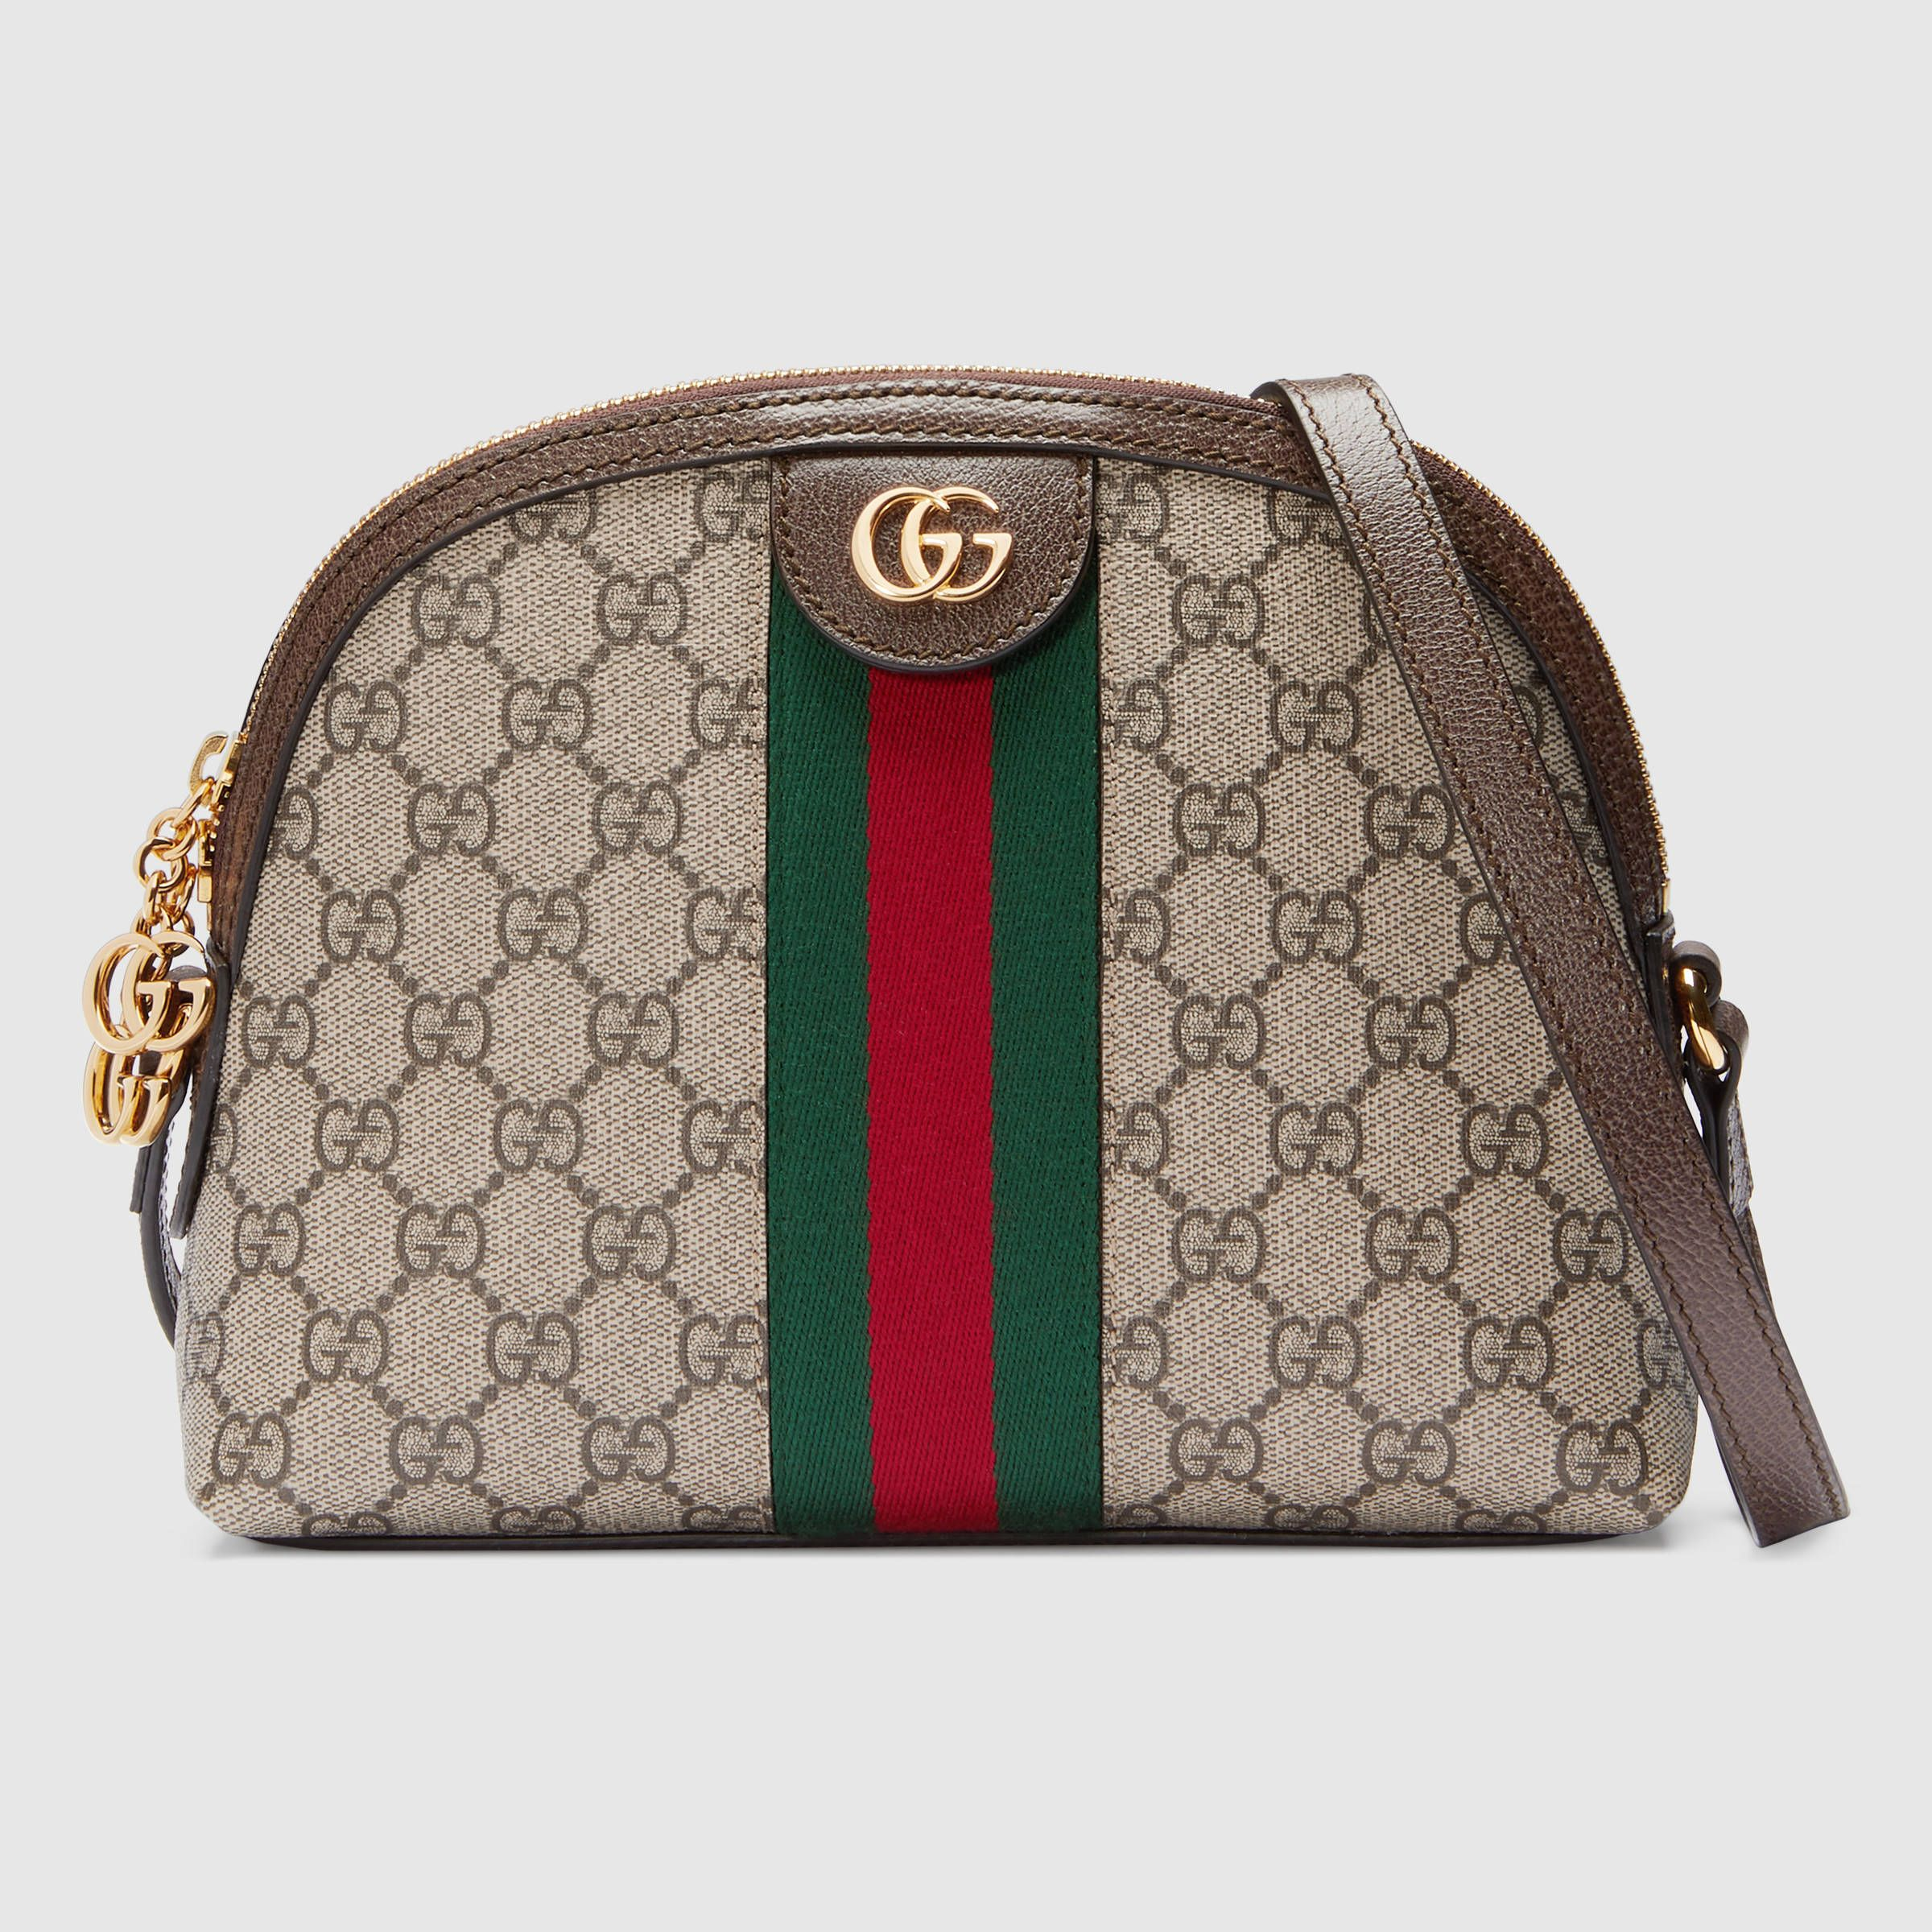 b3e9d2aa5 Ophidia GG small shoulder bag. Ophidia GG Supreme shoulder bag Gucci ...